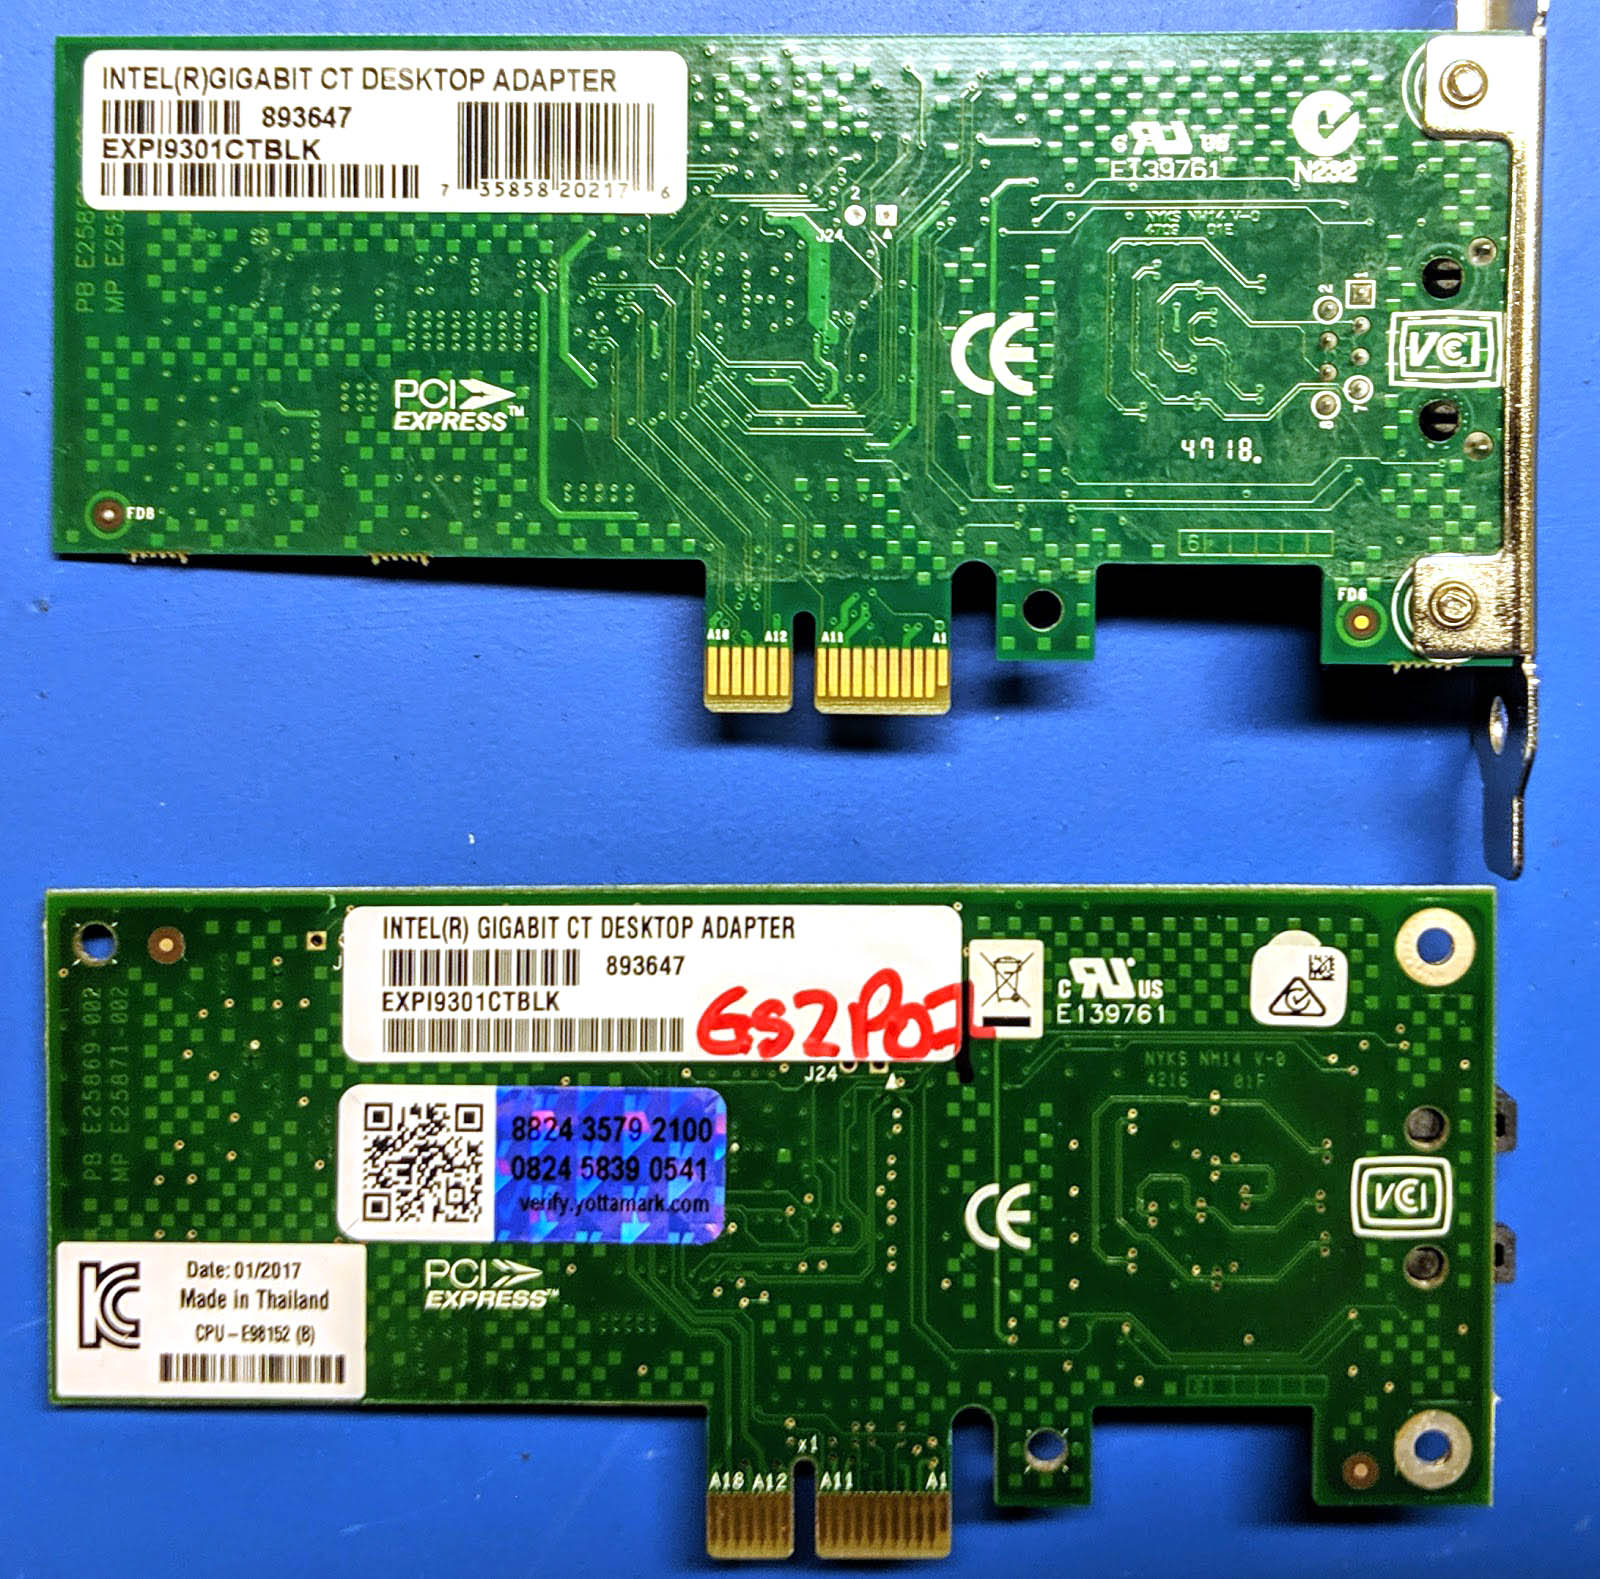 Identifying Risky Counterfeit Intel Gigabit CT Network Adapters